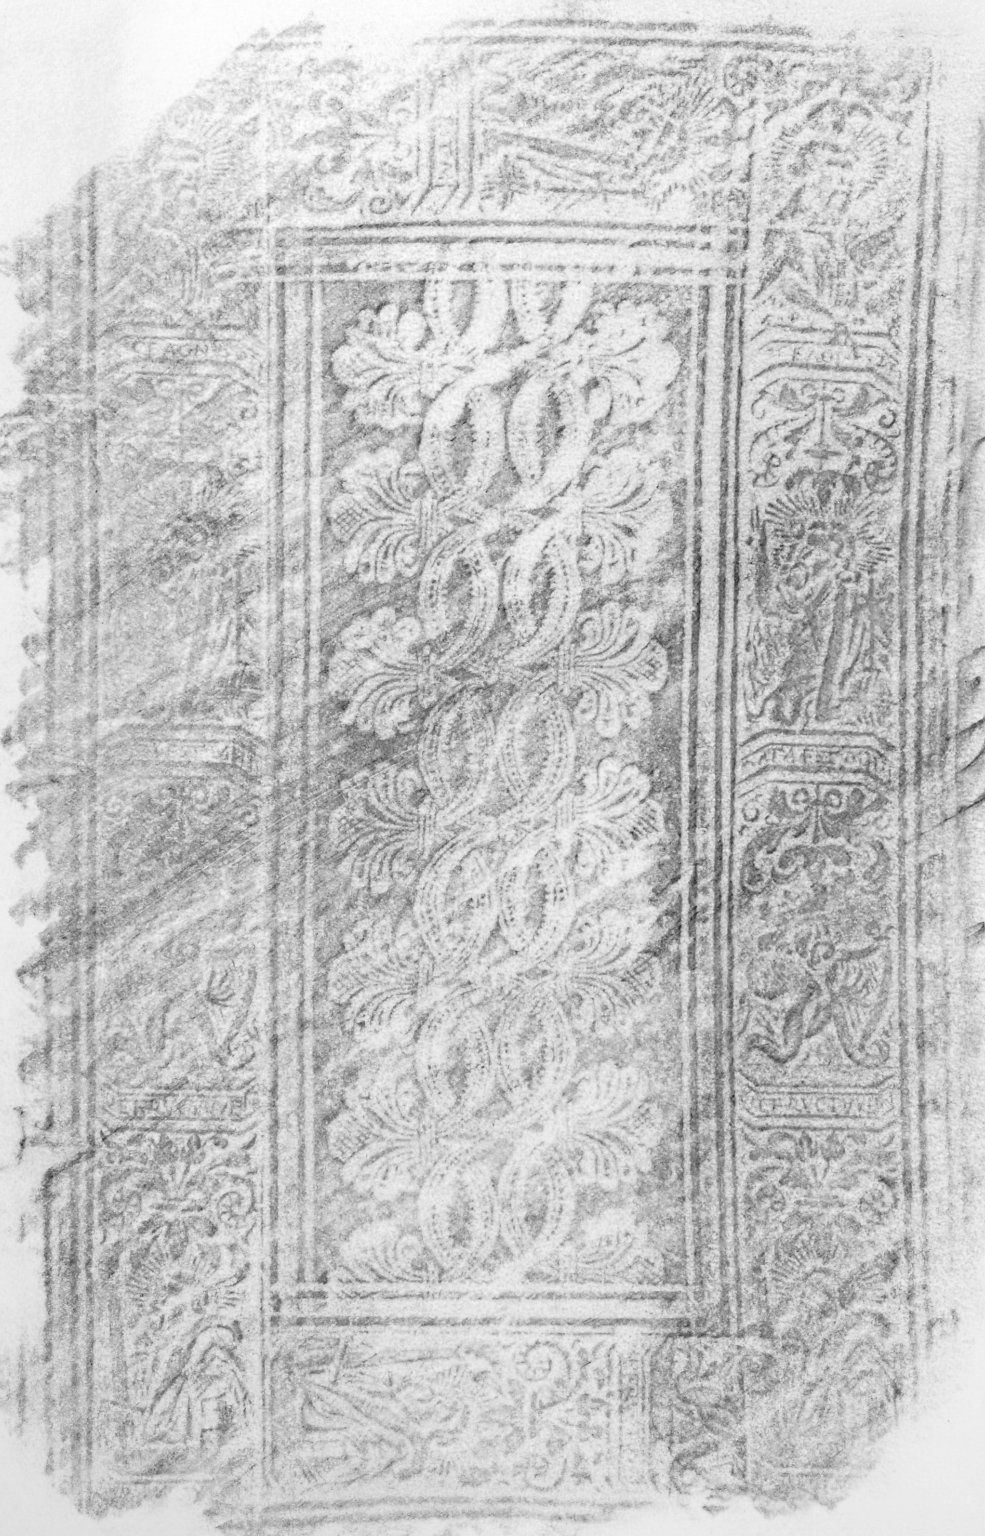 Front cover rubbing, KA47 D3 1556 cage.